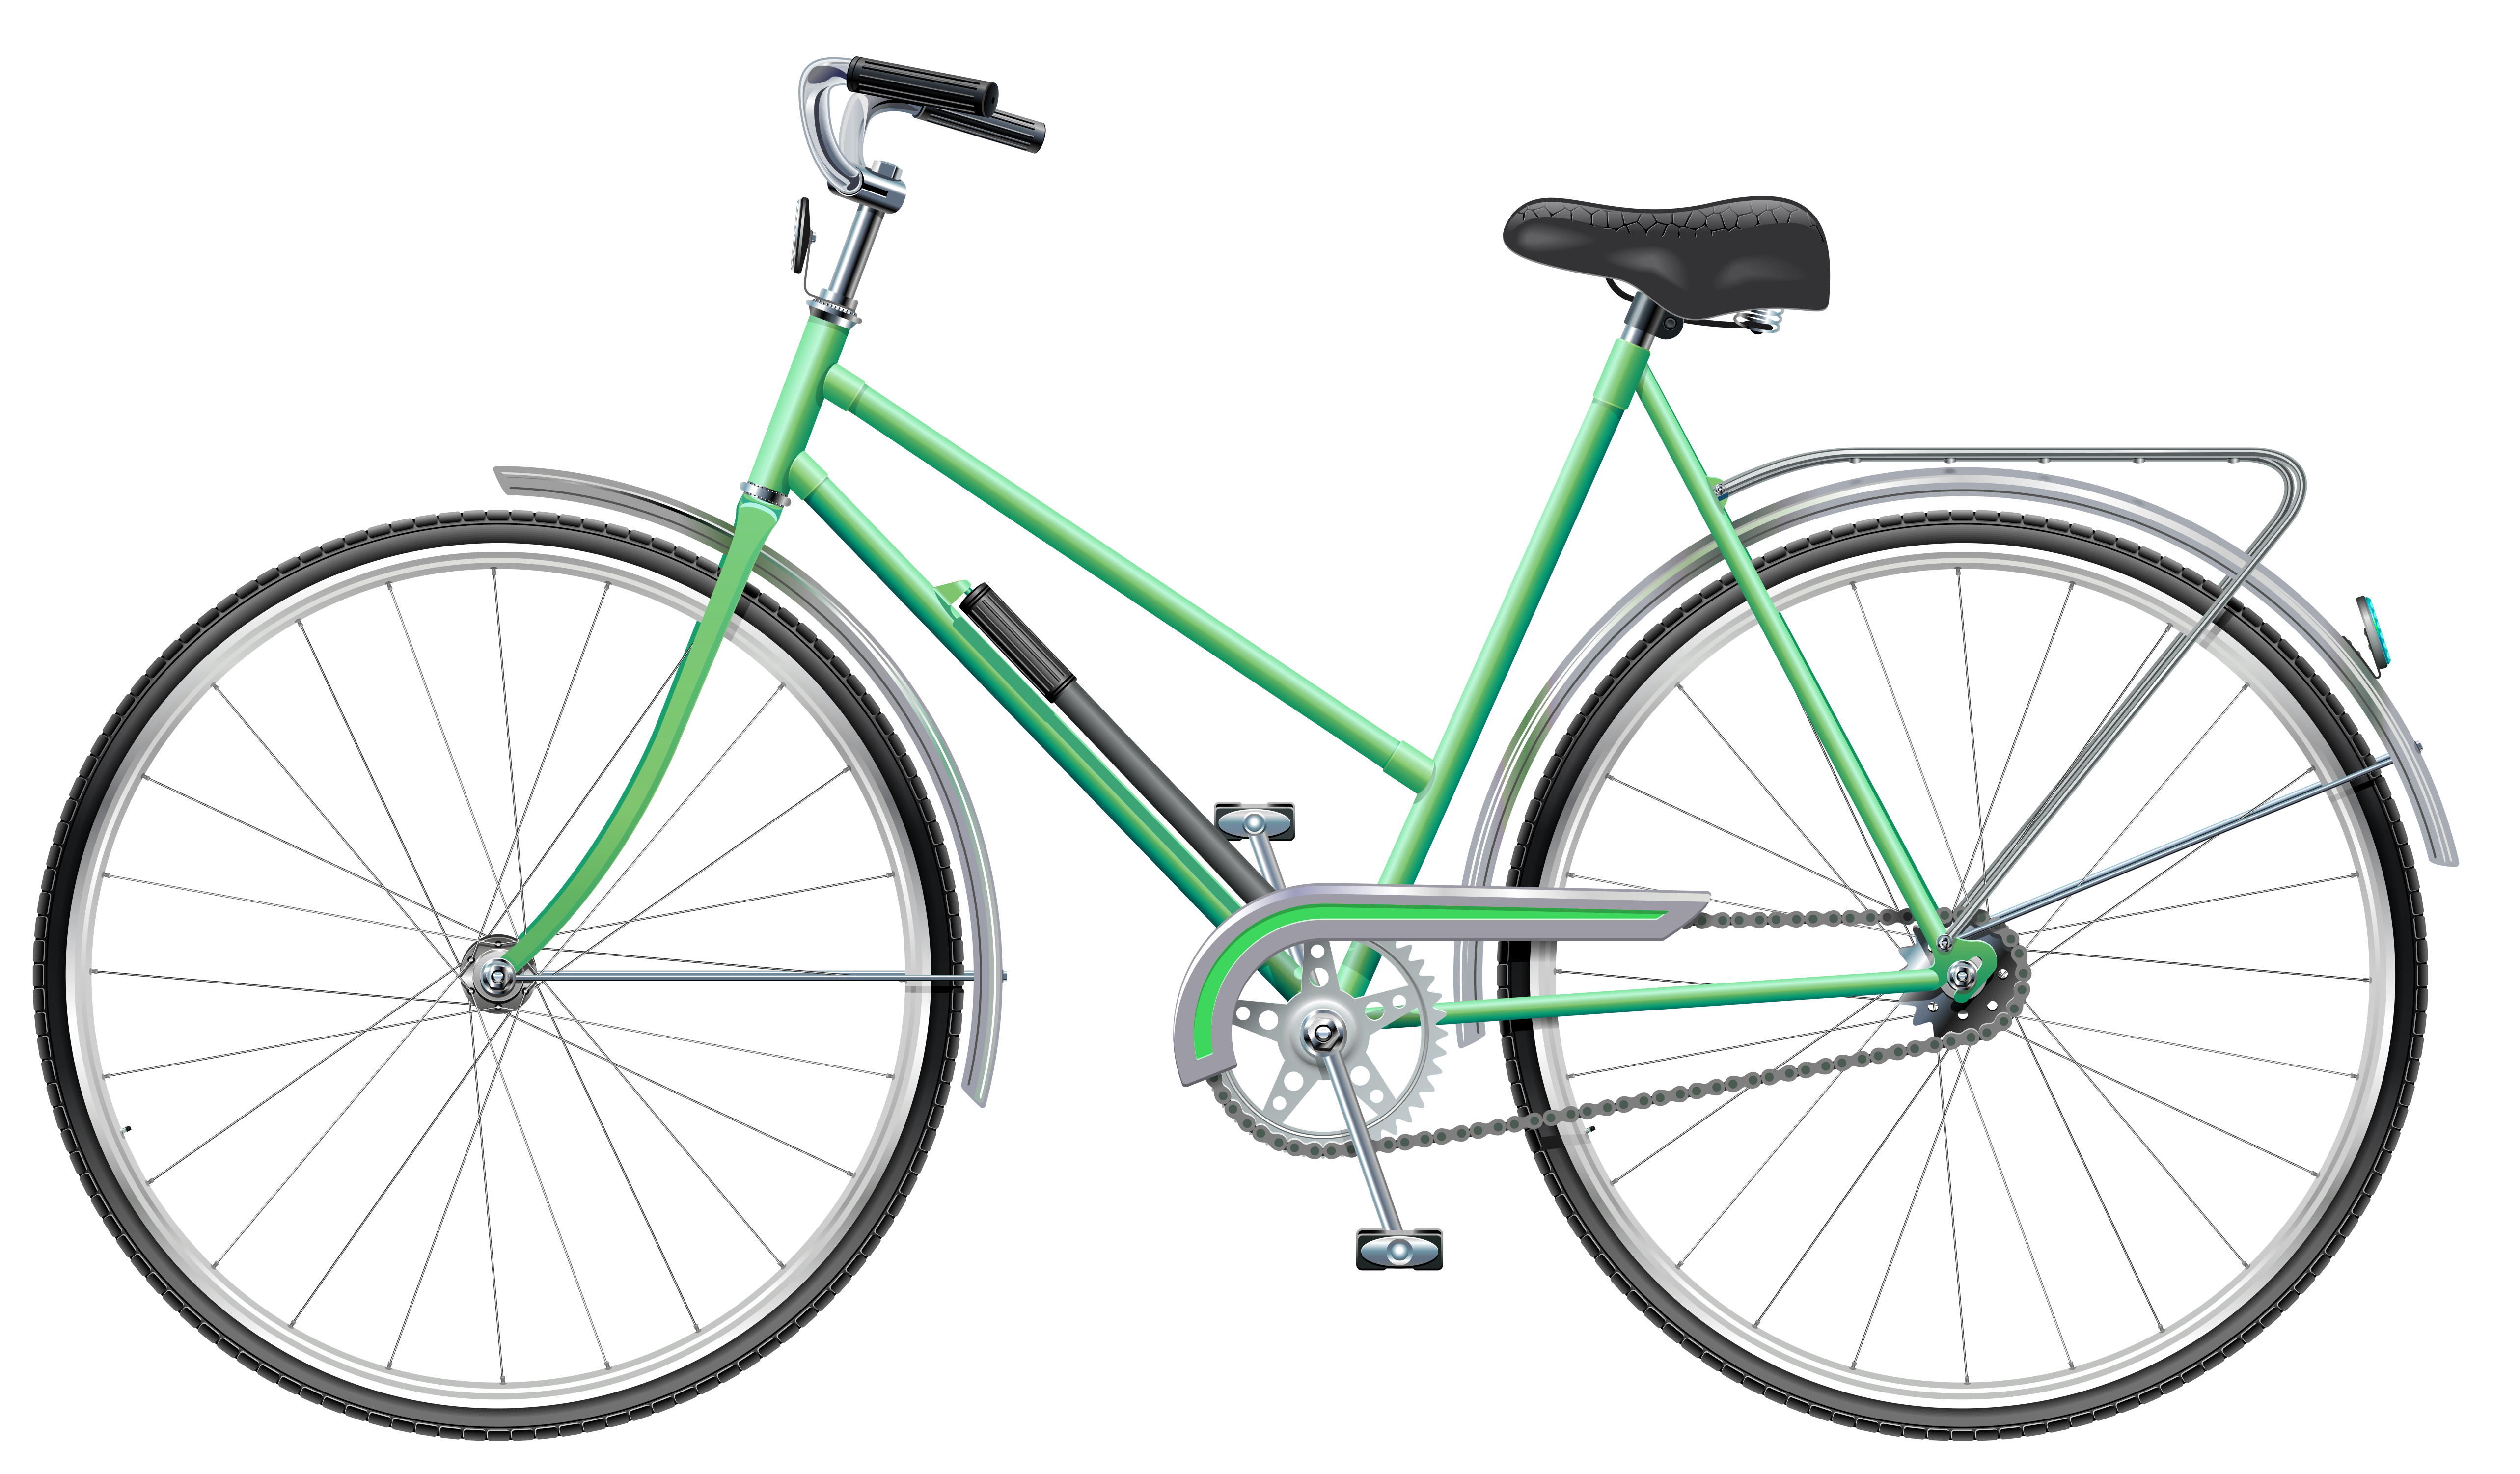 Green bicycle png clip. Bike clipart transparent background